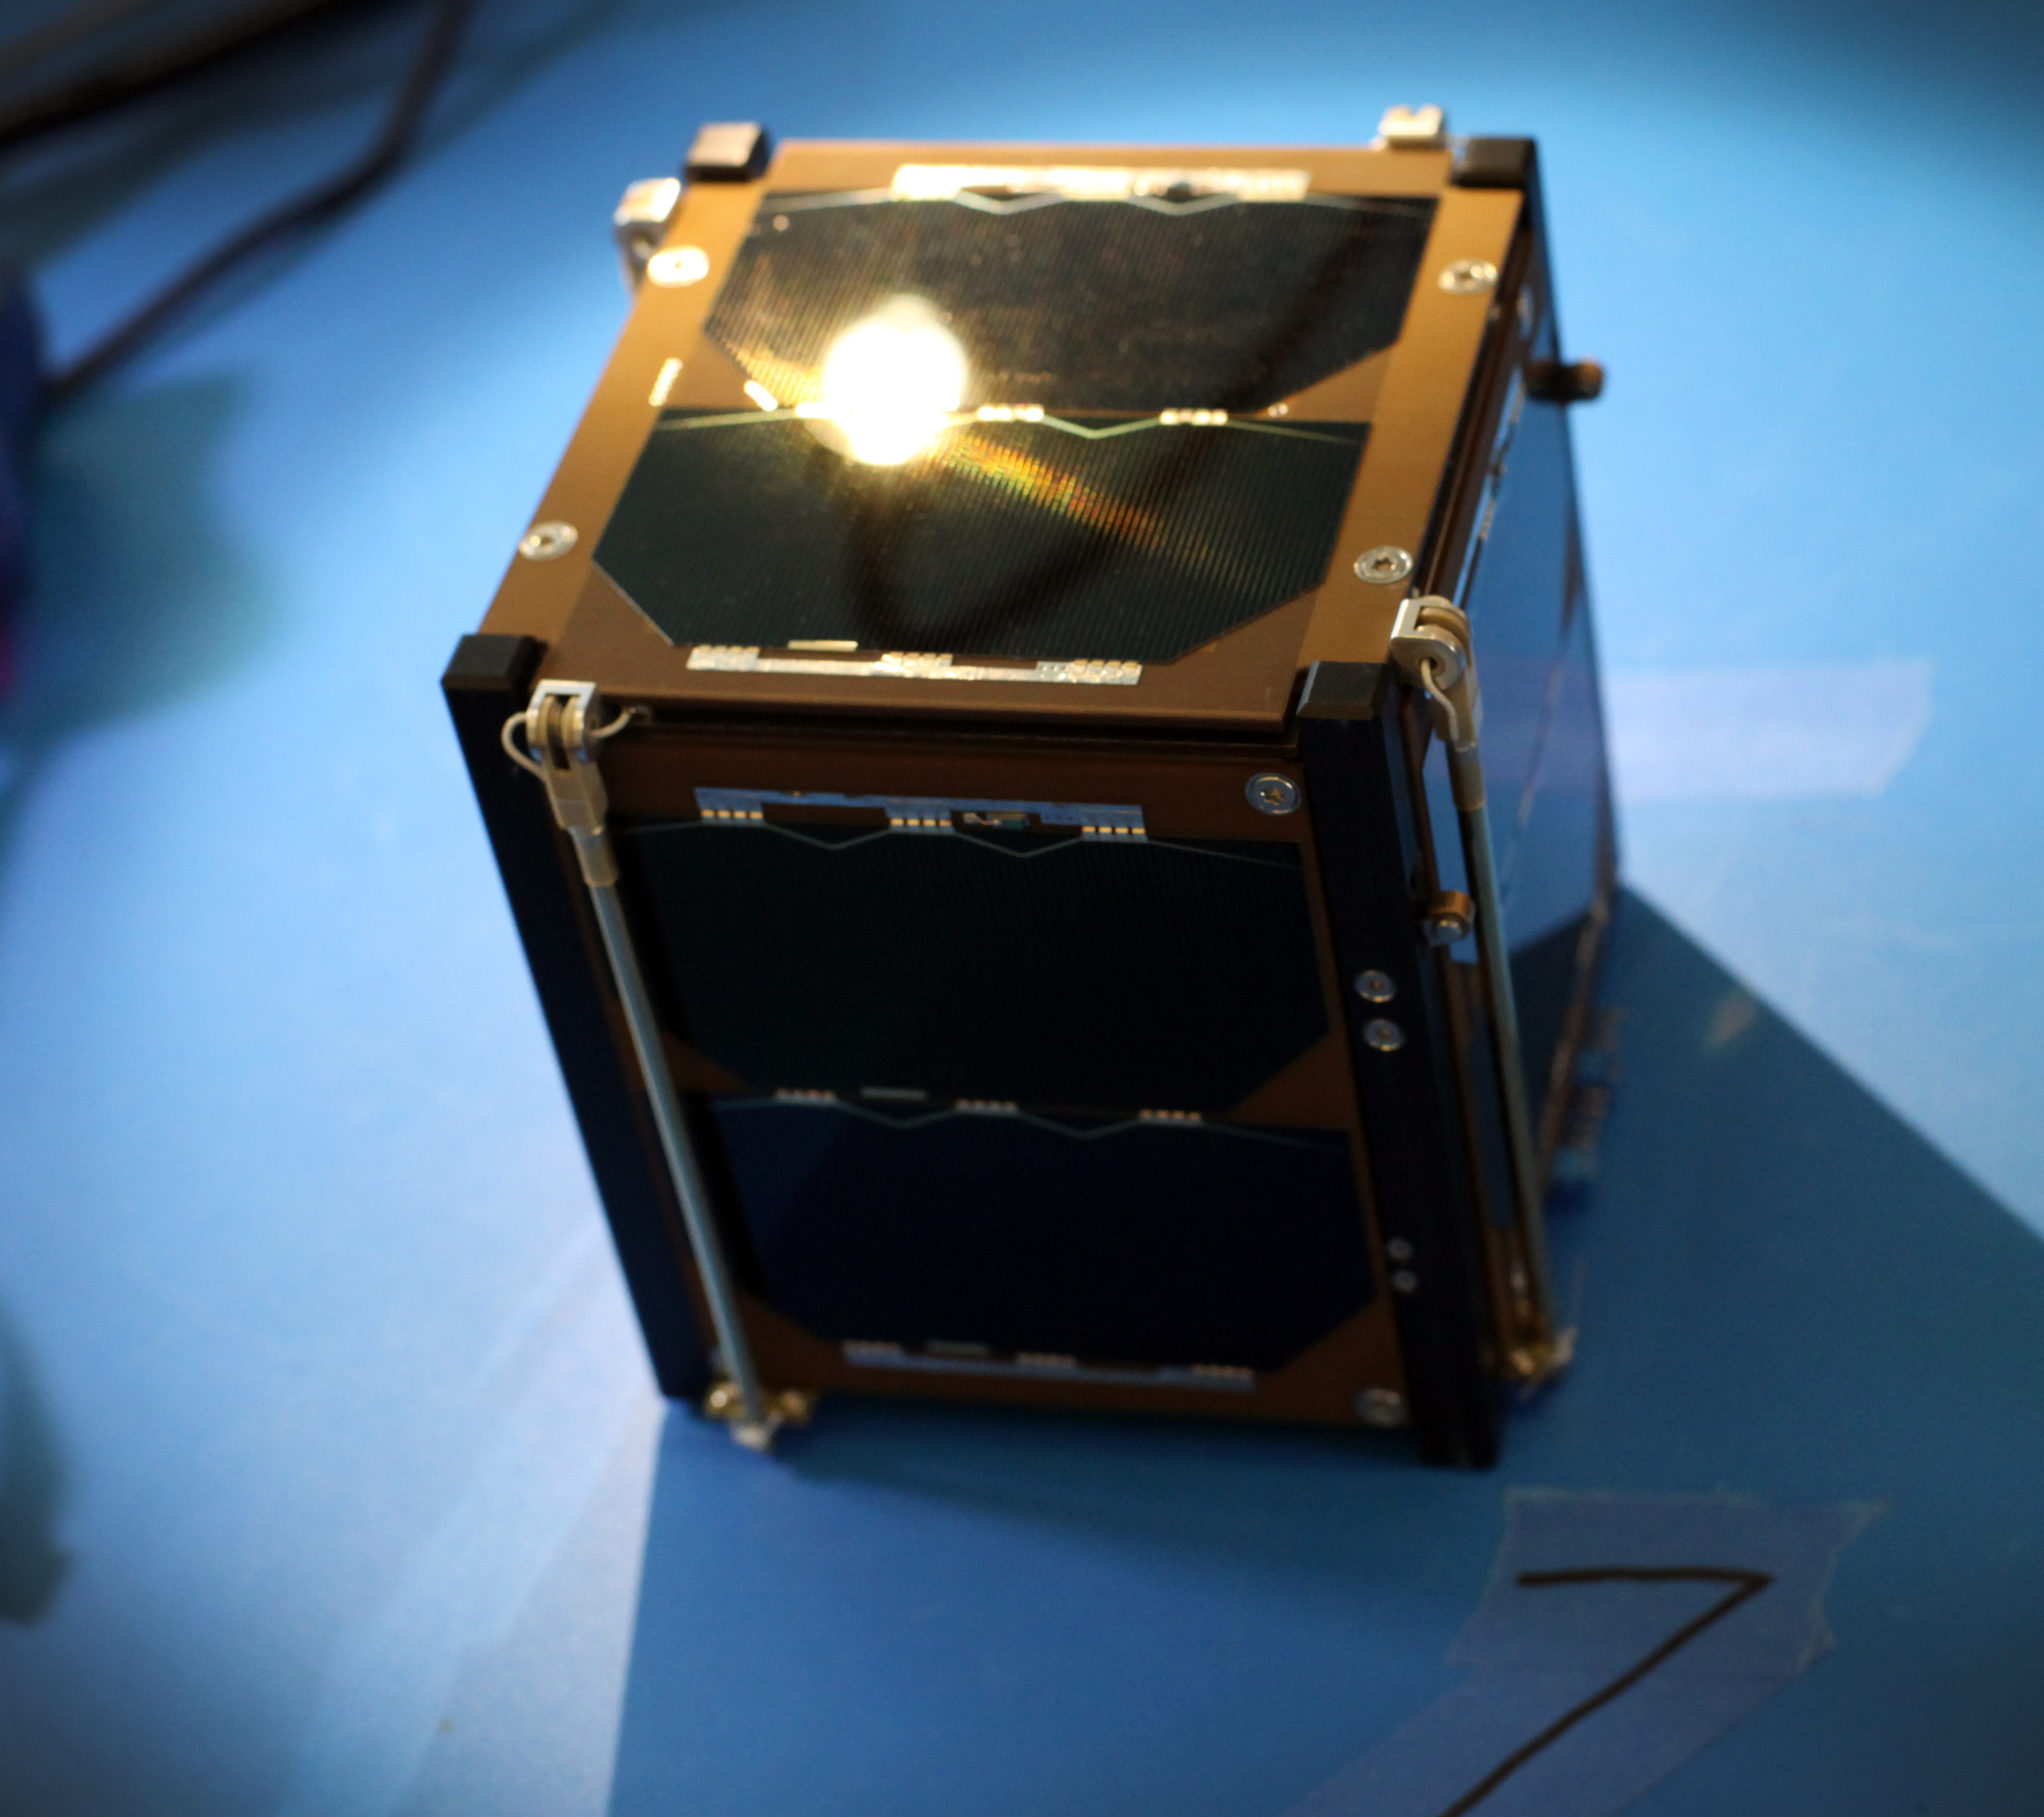 Space for all: Small, cheap satellites may one day do your bidding